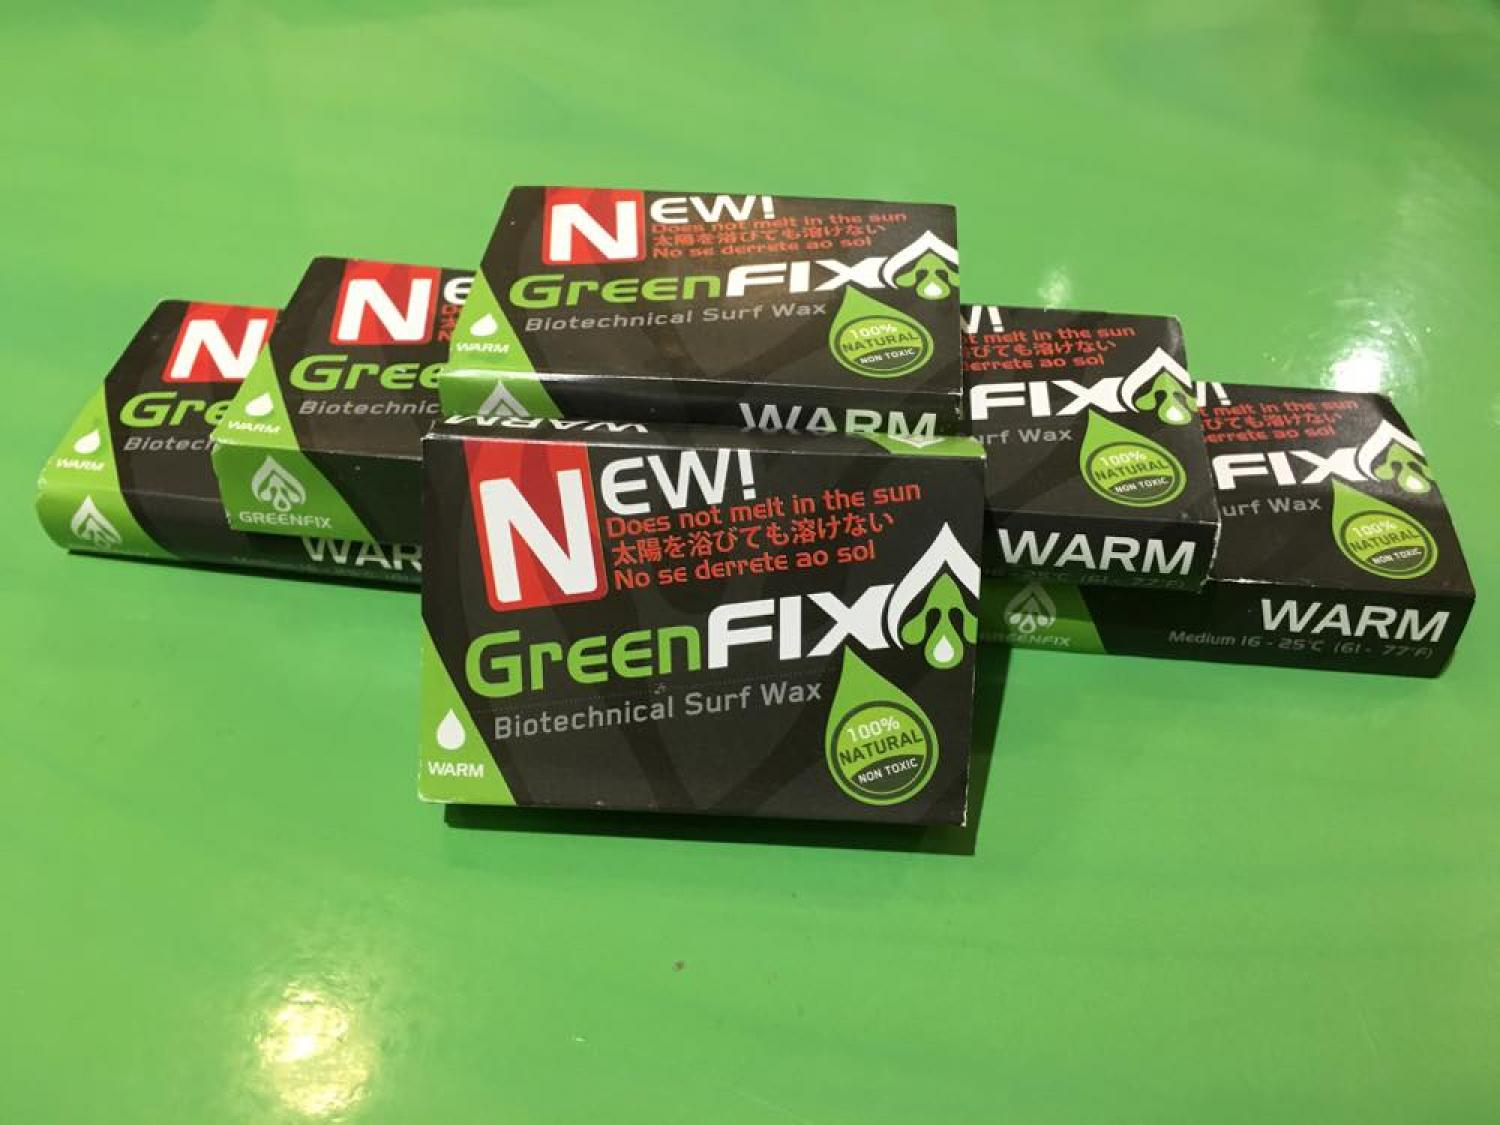 Green FIX WARM